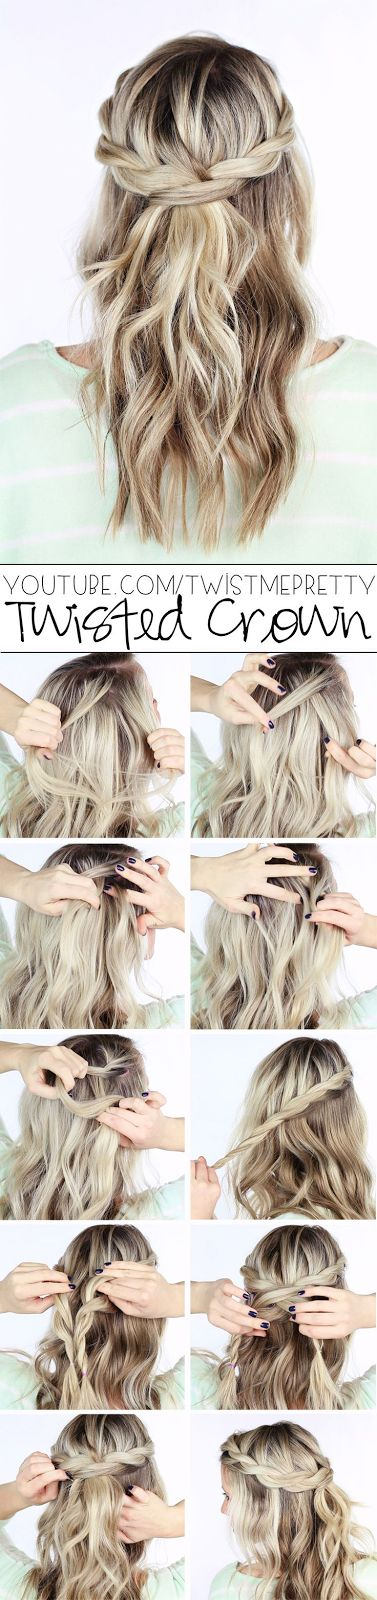 The Hottest Female Hair Trends for 2015 Year